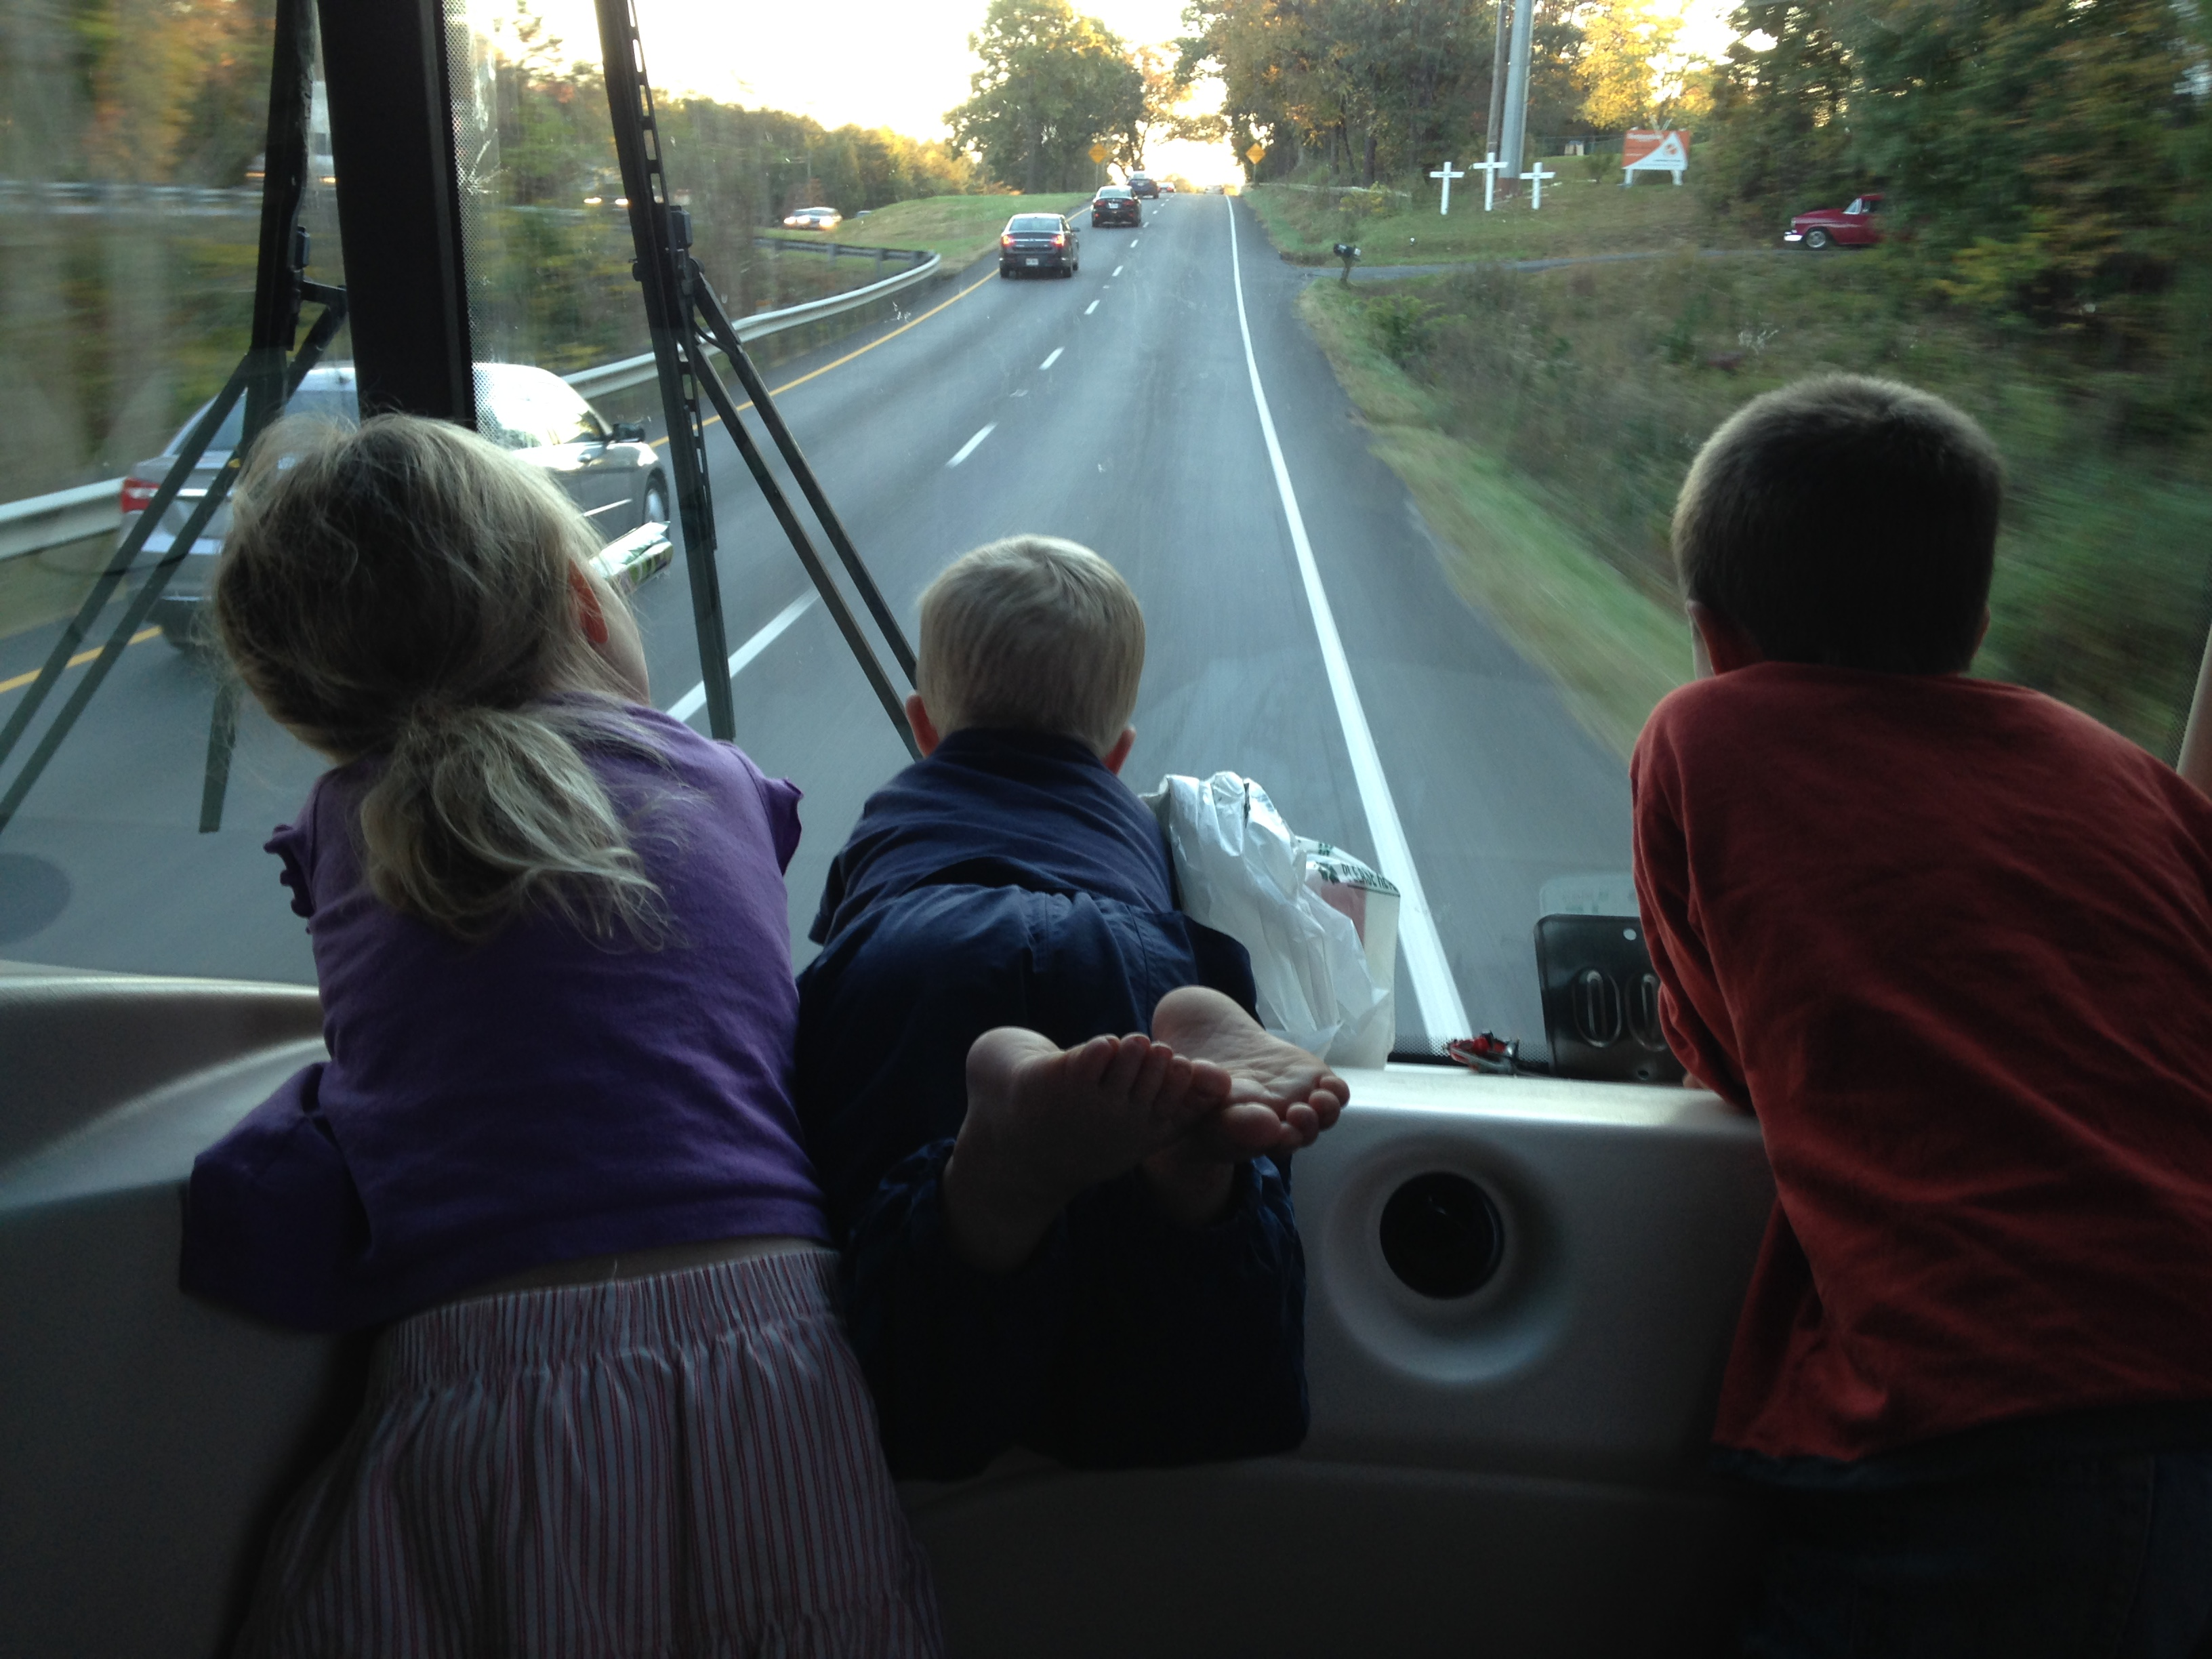 The kids thought this was a great way to ride along. I love Kolby's feet in the air.